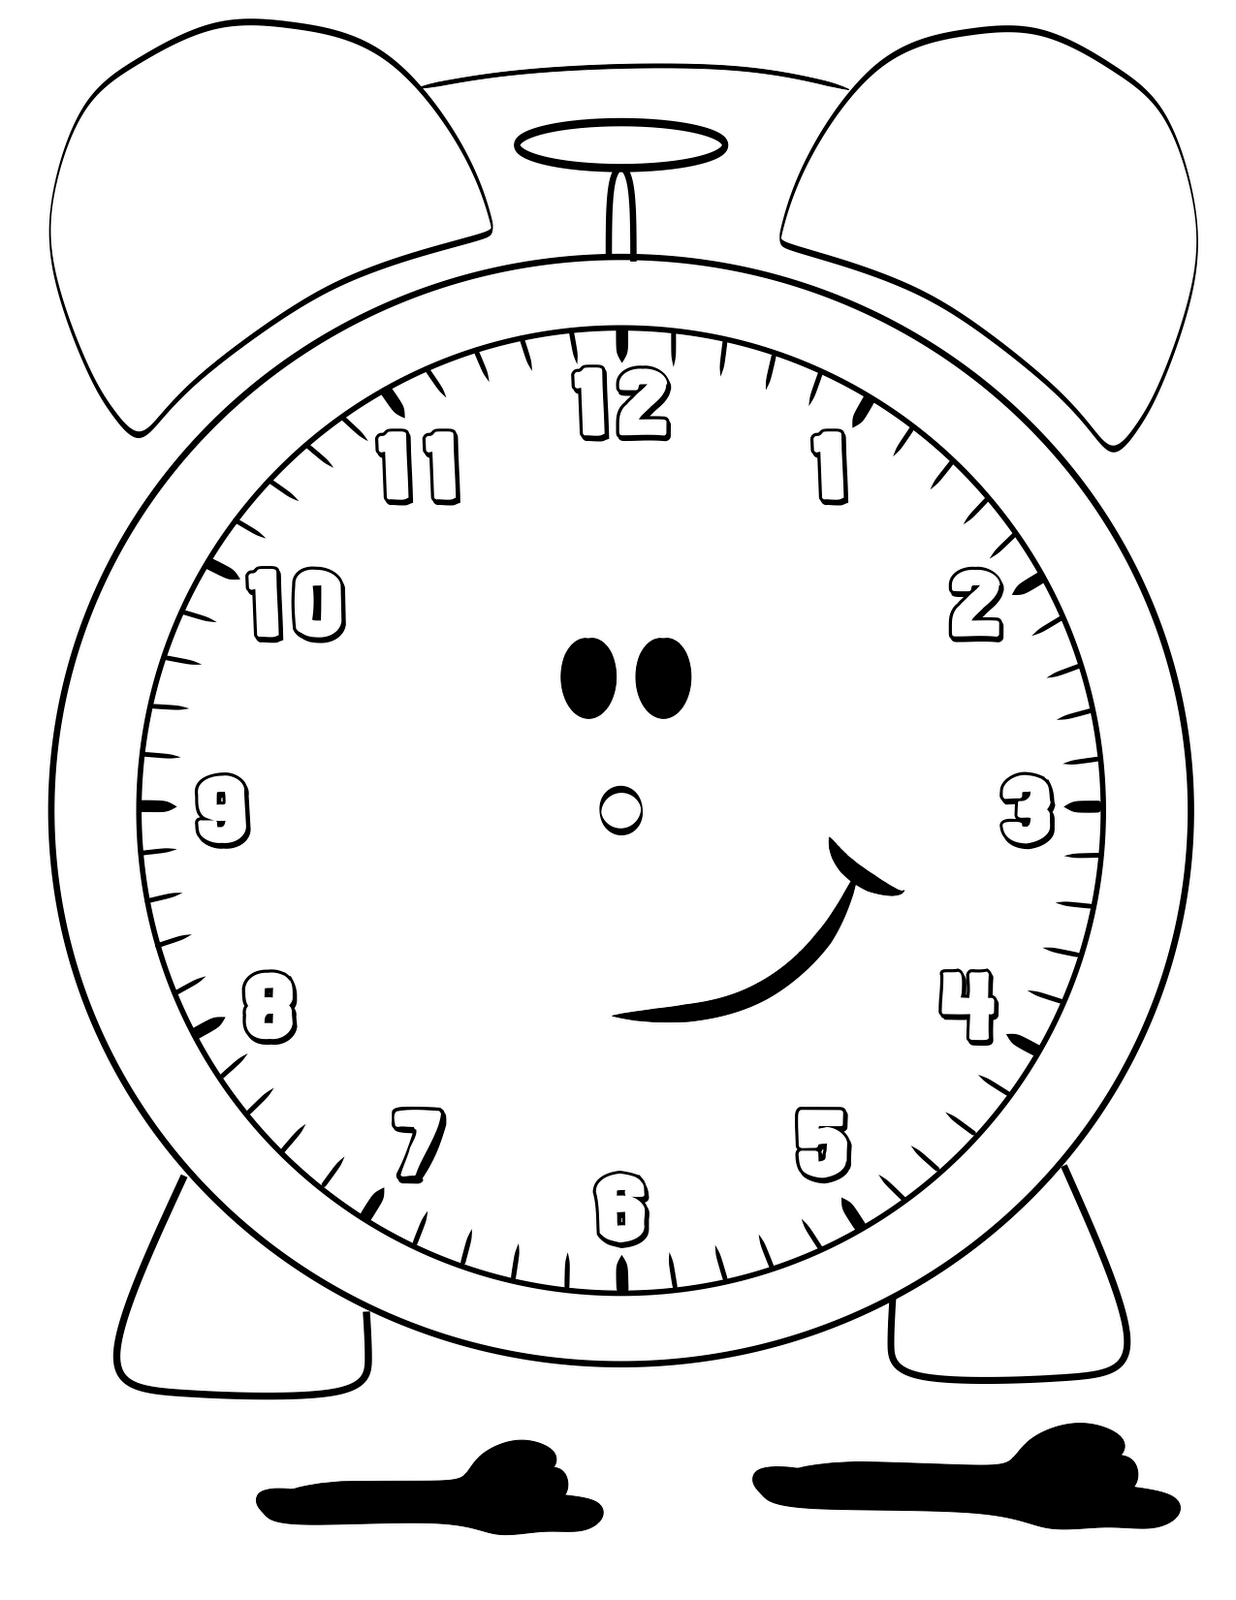 Geeky image for printable clocks